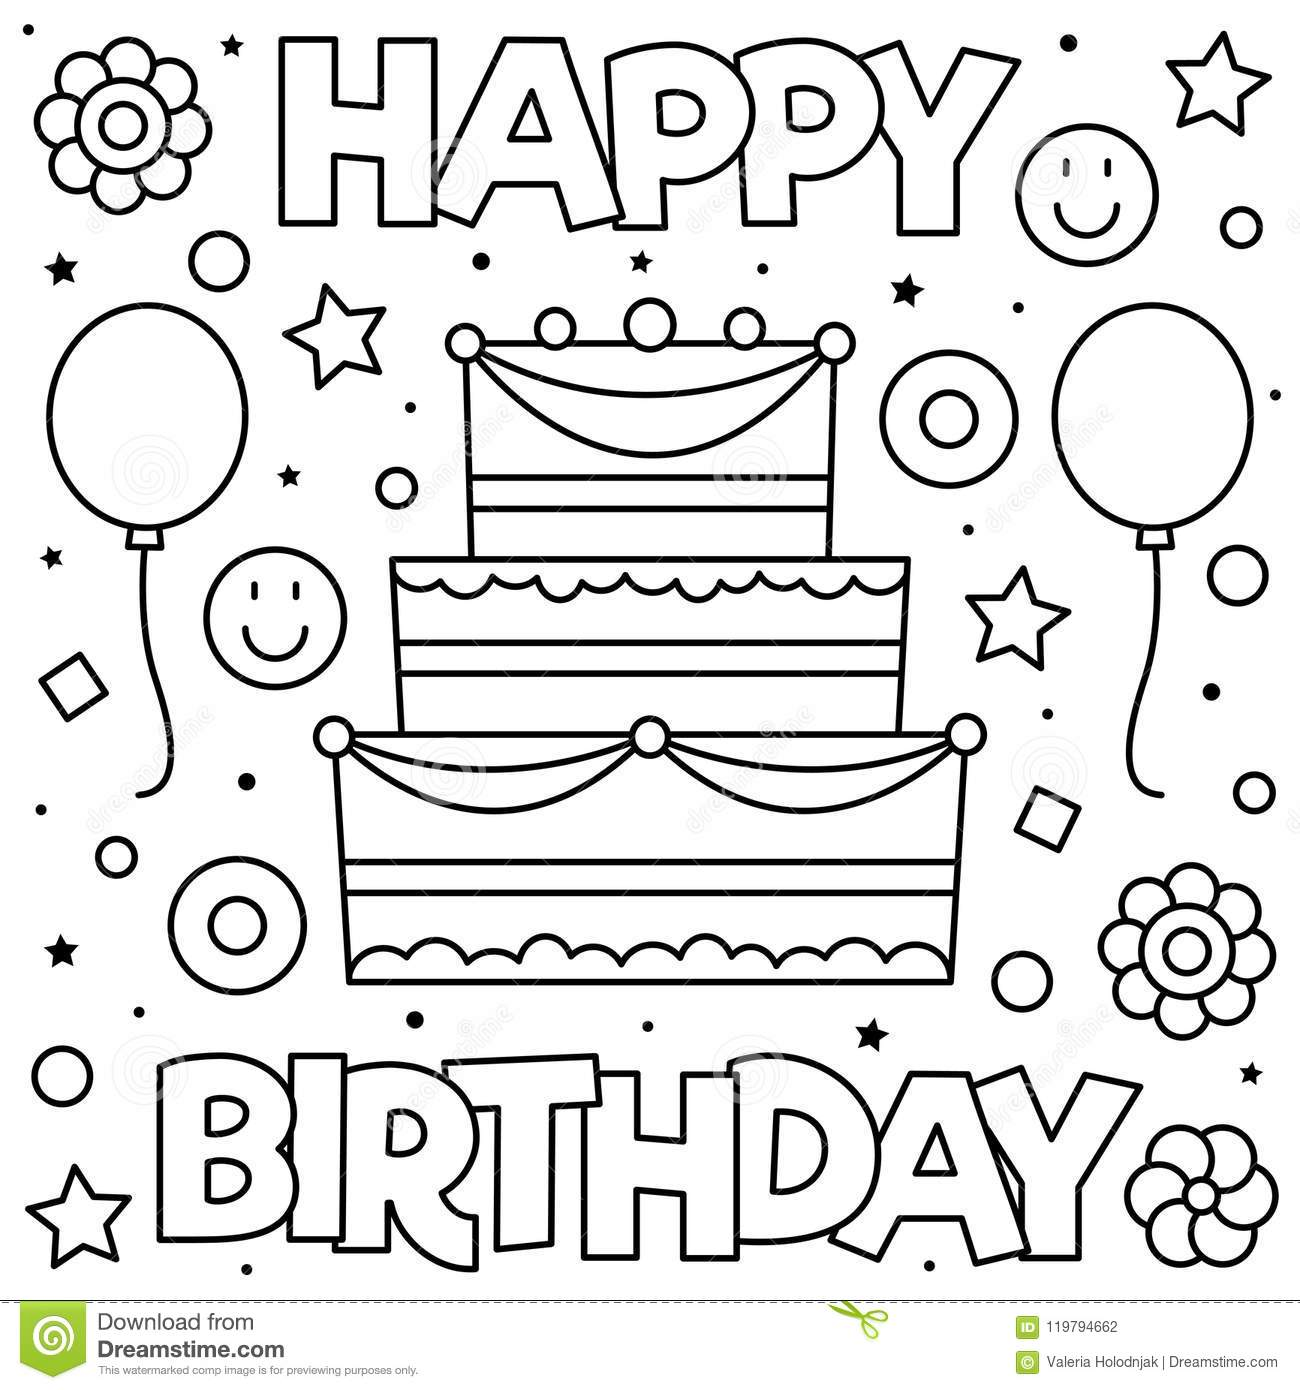 Happy birthday printable star – coloring pages for kids | coloing ... | 1390x1300